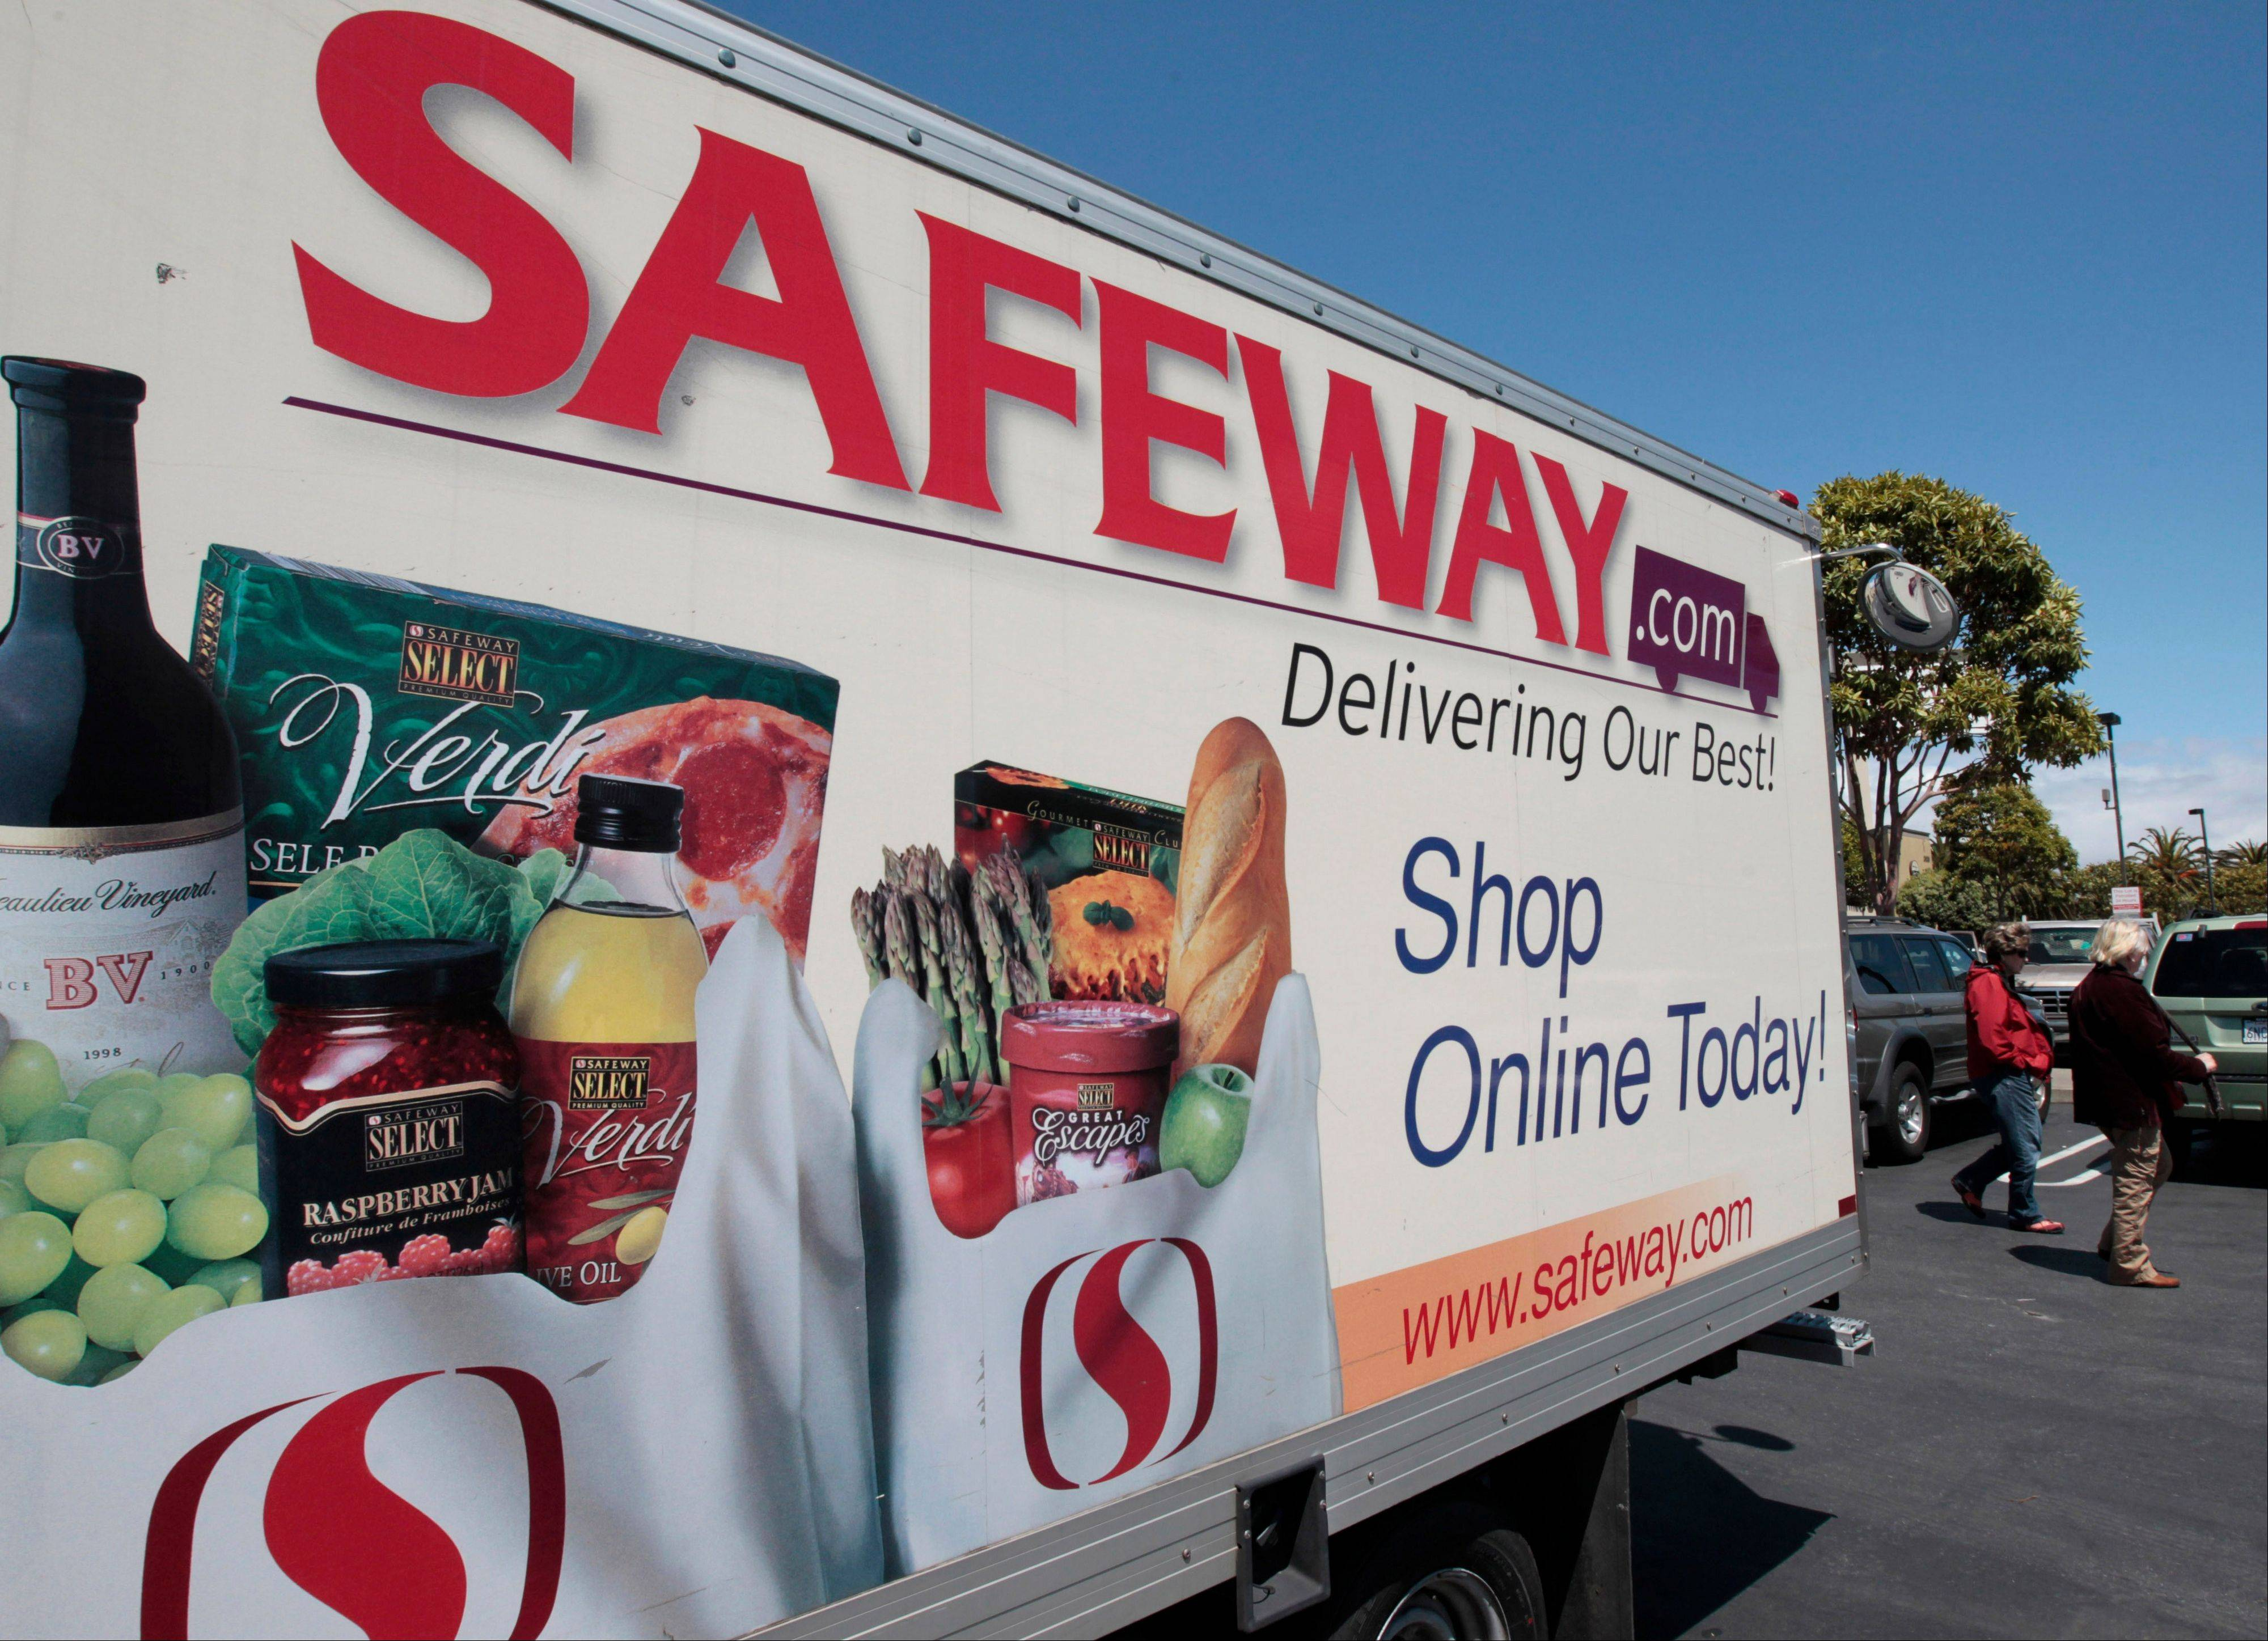 Dominick's parent company Safeway said Thursday its third-quarter net income fell 58 percent, hurt by a software impairment charge, higher theft and lower property gains.